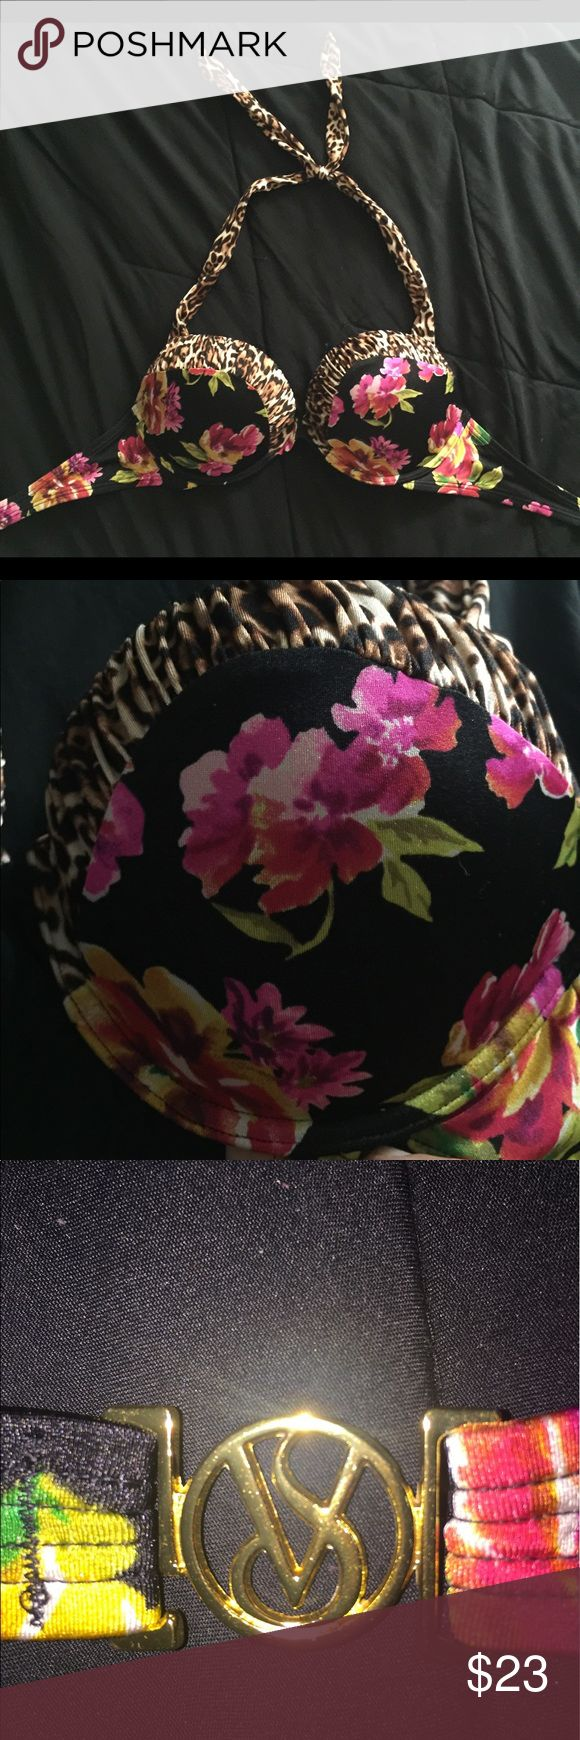 Victoria secret Bombshell swim top. 34C 🌺💣✨😘 Floral and jaguar print halter top. Padded and push up bombshell style. Hooks in the back. Victoria secret brand. Good condition. Great for a Vegas pool party this summer 💦💦✨✨💦💦✨✨💦💦 Victoria's Secret Swim One Pieces